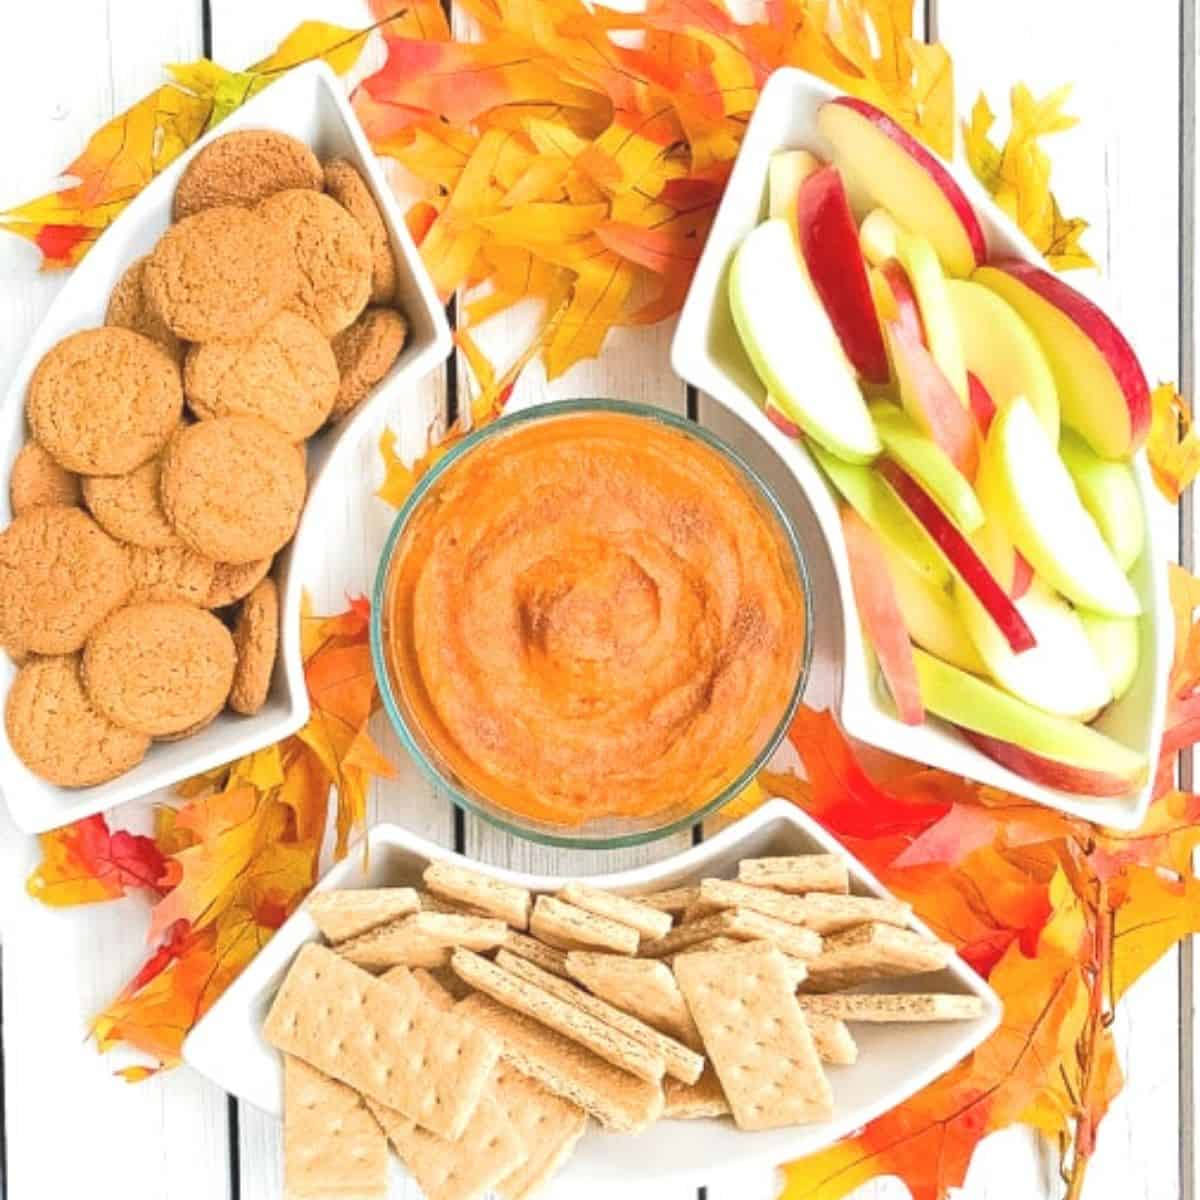 pumpkin puree dip with gingersnap cookies and apples